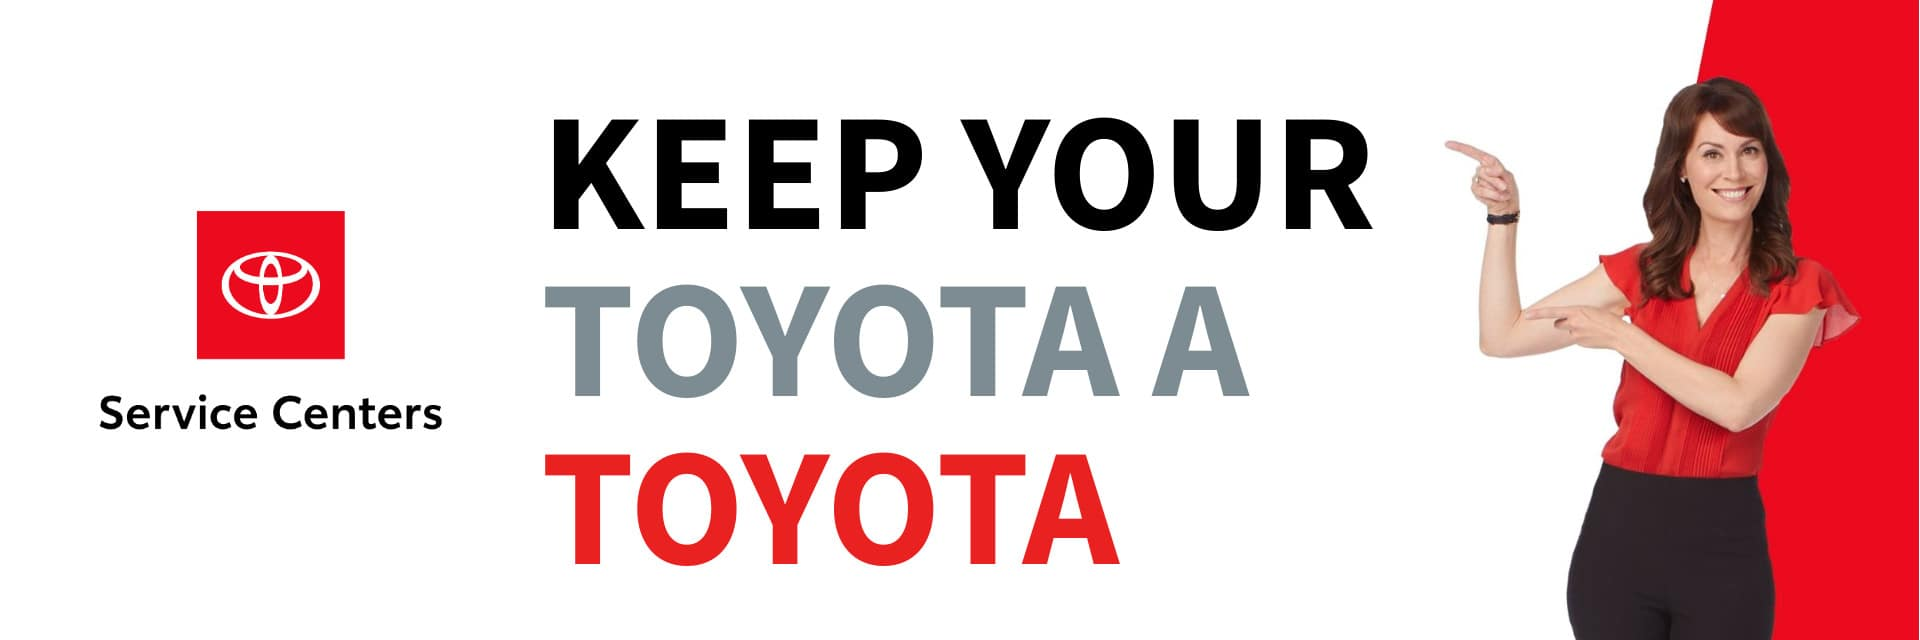 1920 X 640 Sept 2021 Keep Your Toyota a Toyota-High-Quality